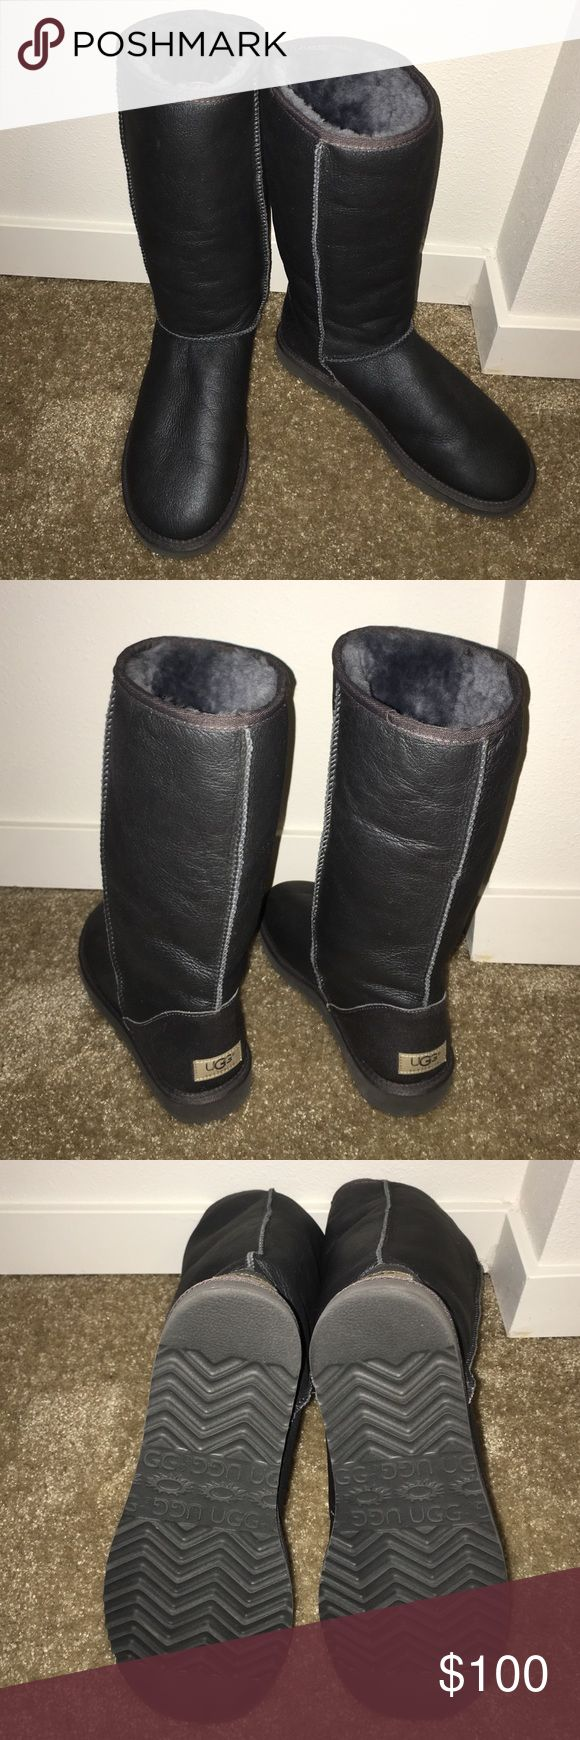 ... ugg classic tall metallic grey boot used womens metallic grey ugg classic tall boot. great